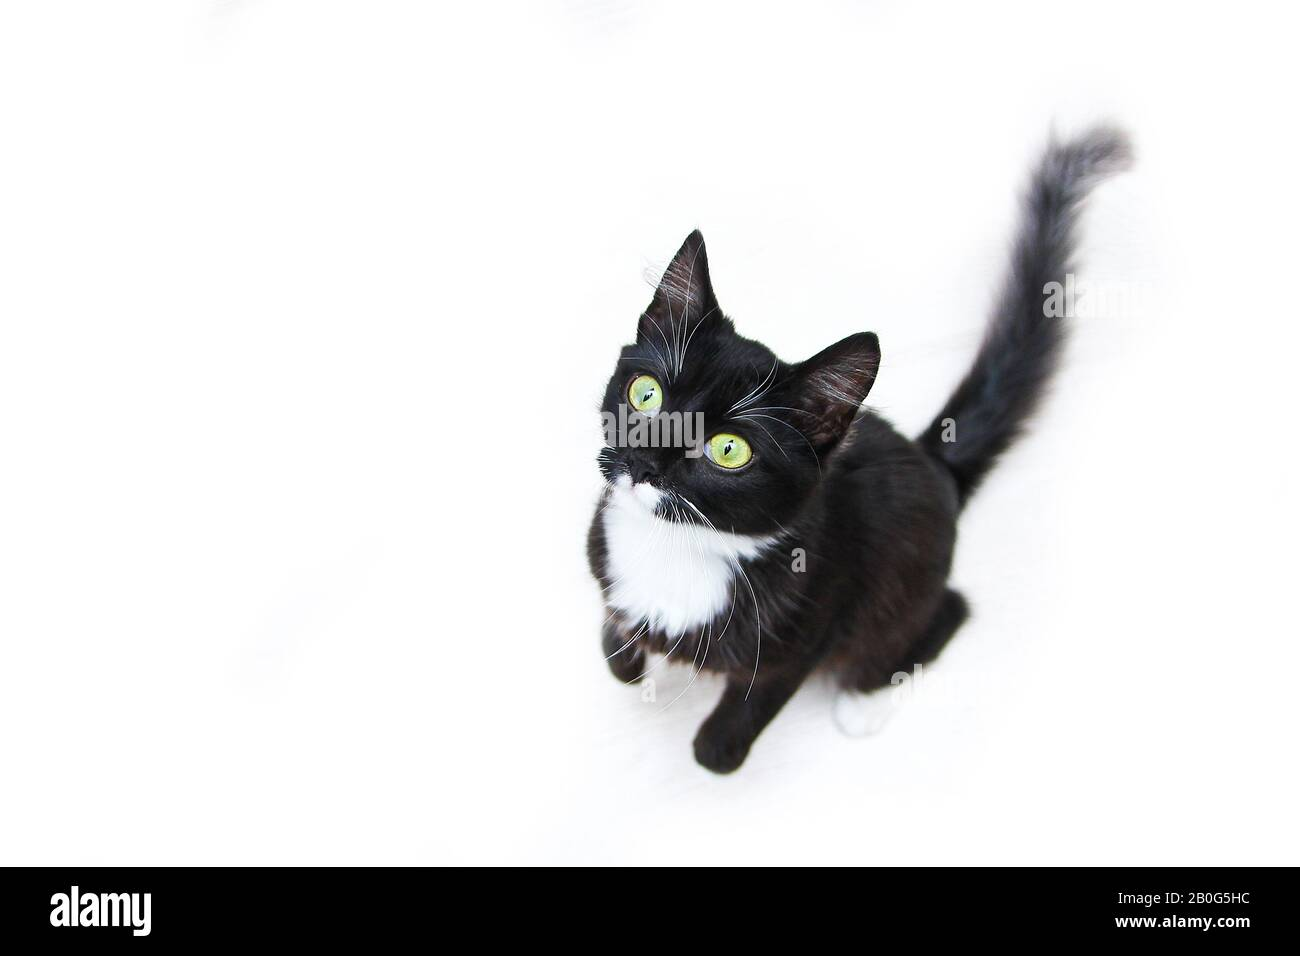 The Cute Black Cat With Green Eyes Sitting On A White Backround Looking Up Curiously Looking Cute And Happy Stock Photo Alamy